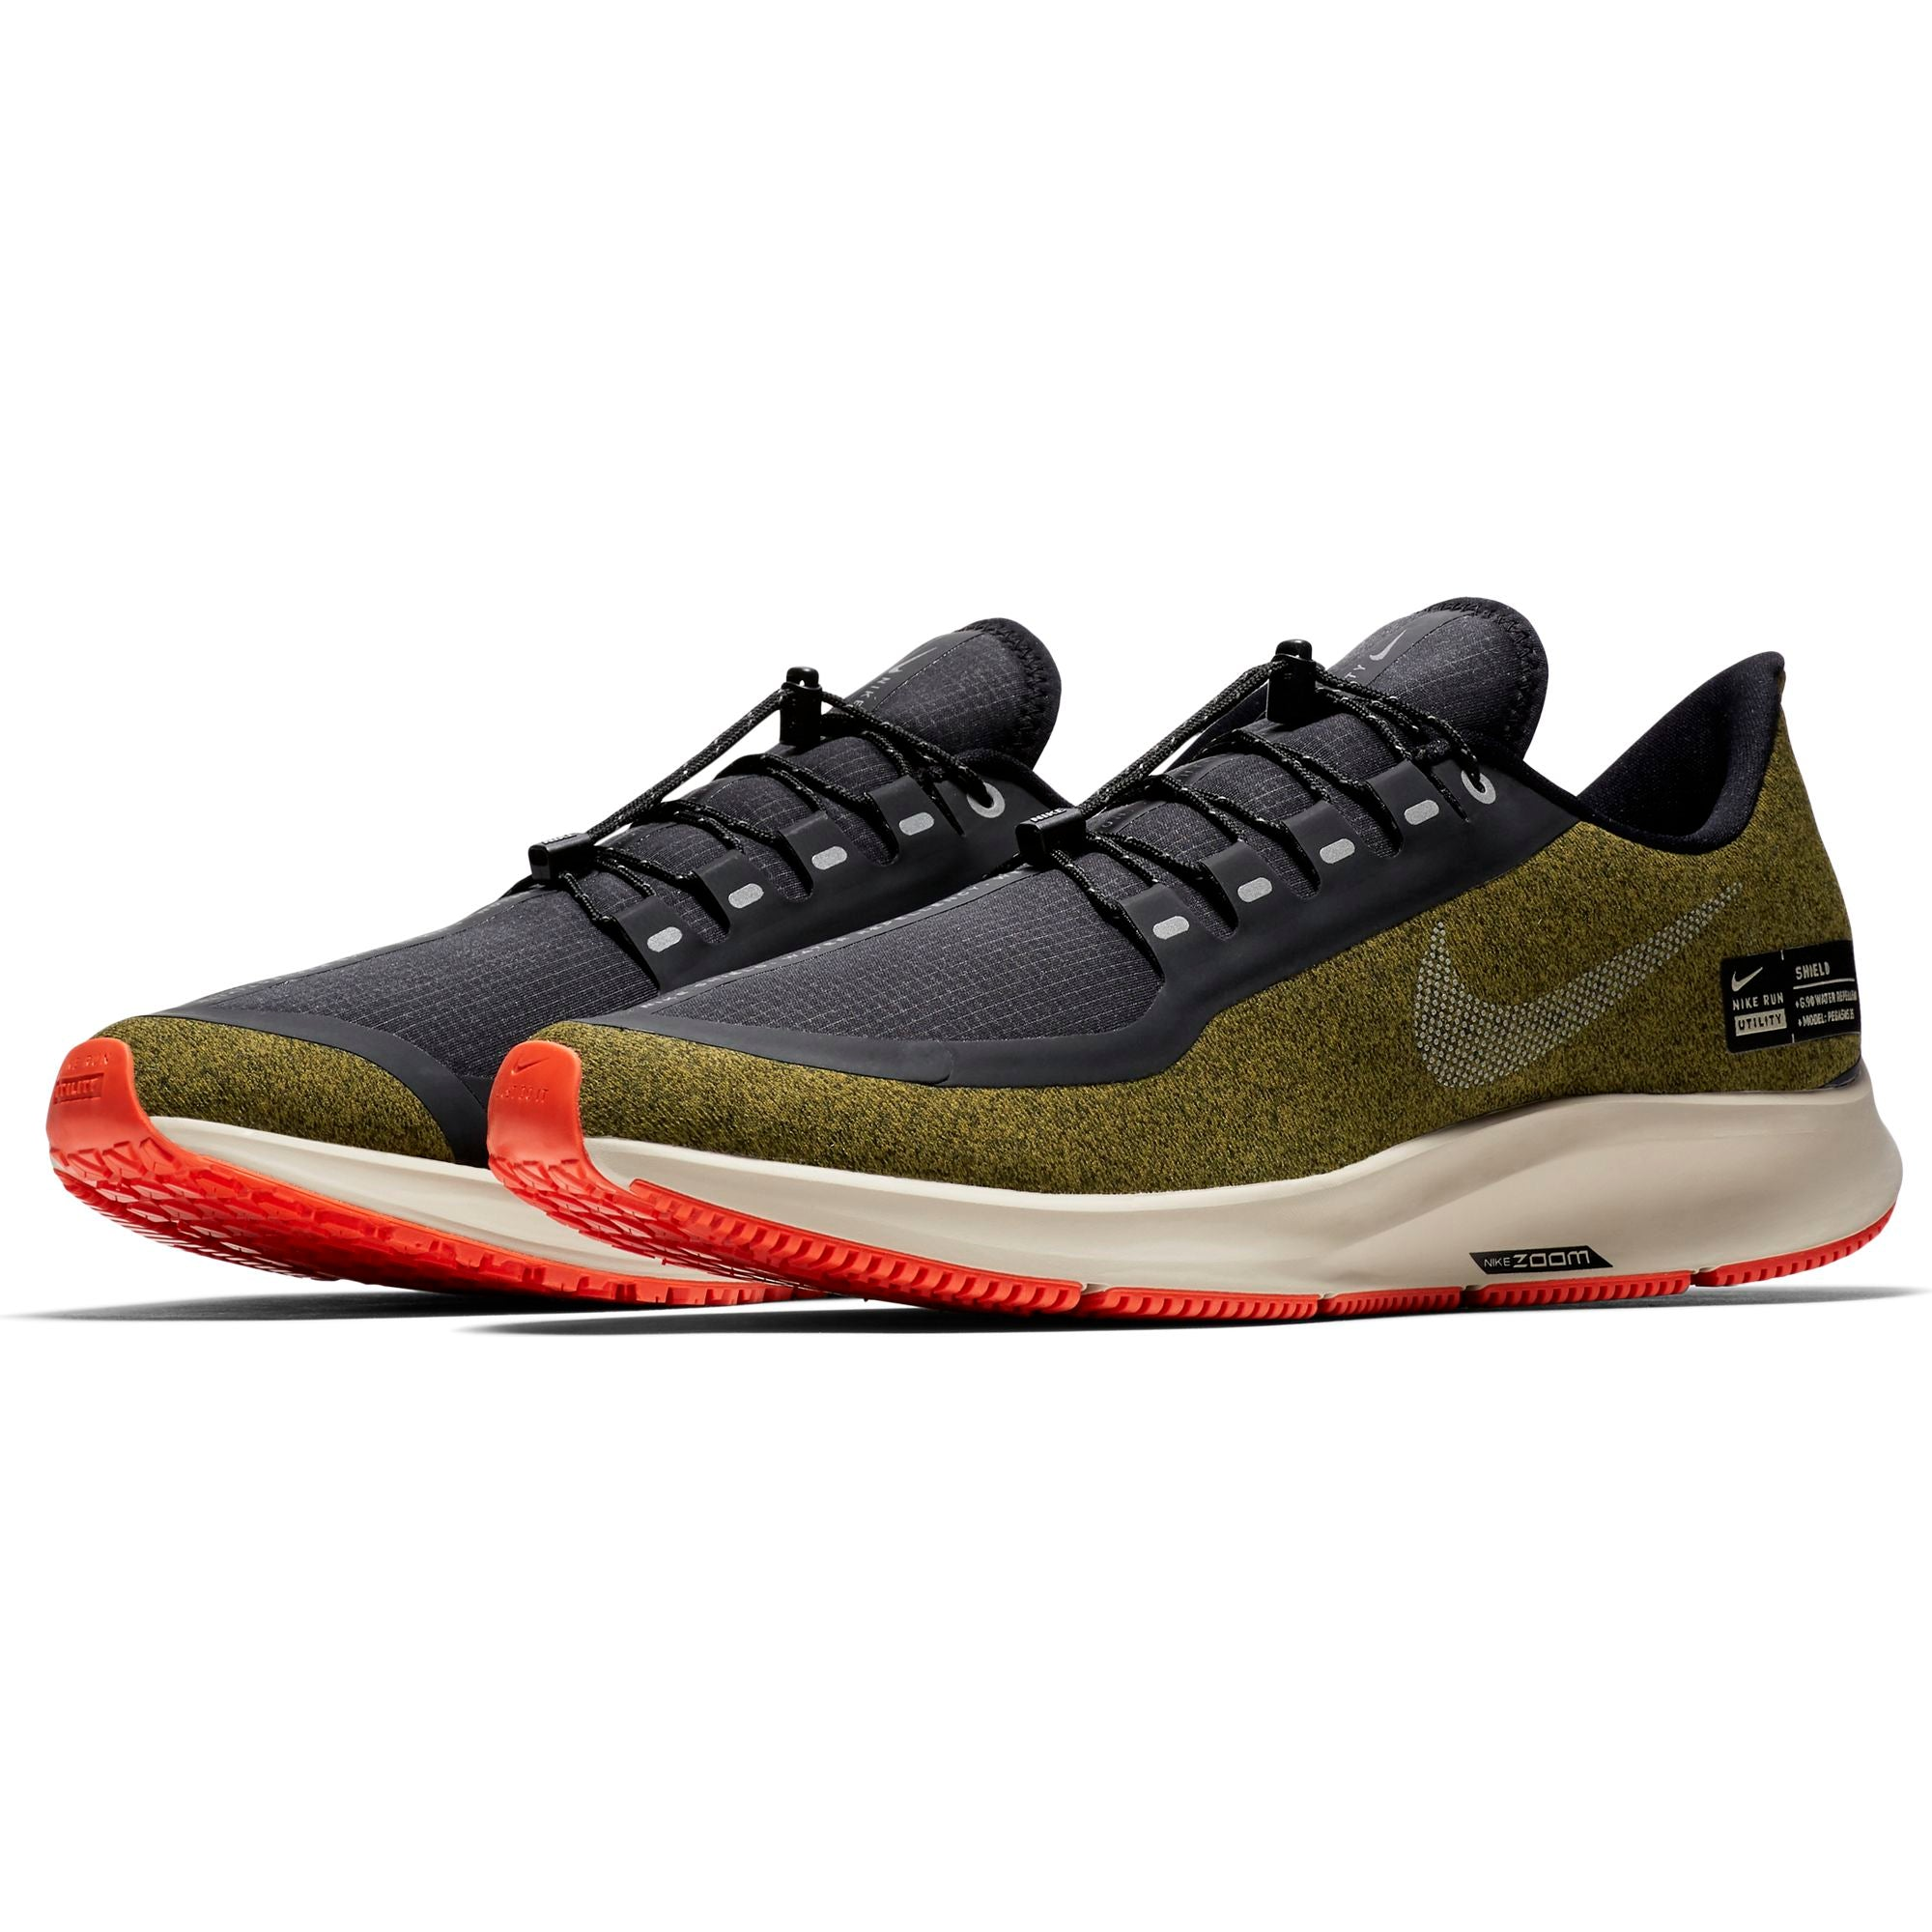 dc2d7dc2b4749 ... Men s Air Zoom Pegasus 35 Shield Running Shoe - Olive Flak Metallic  Silver Black ...